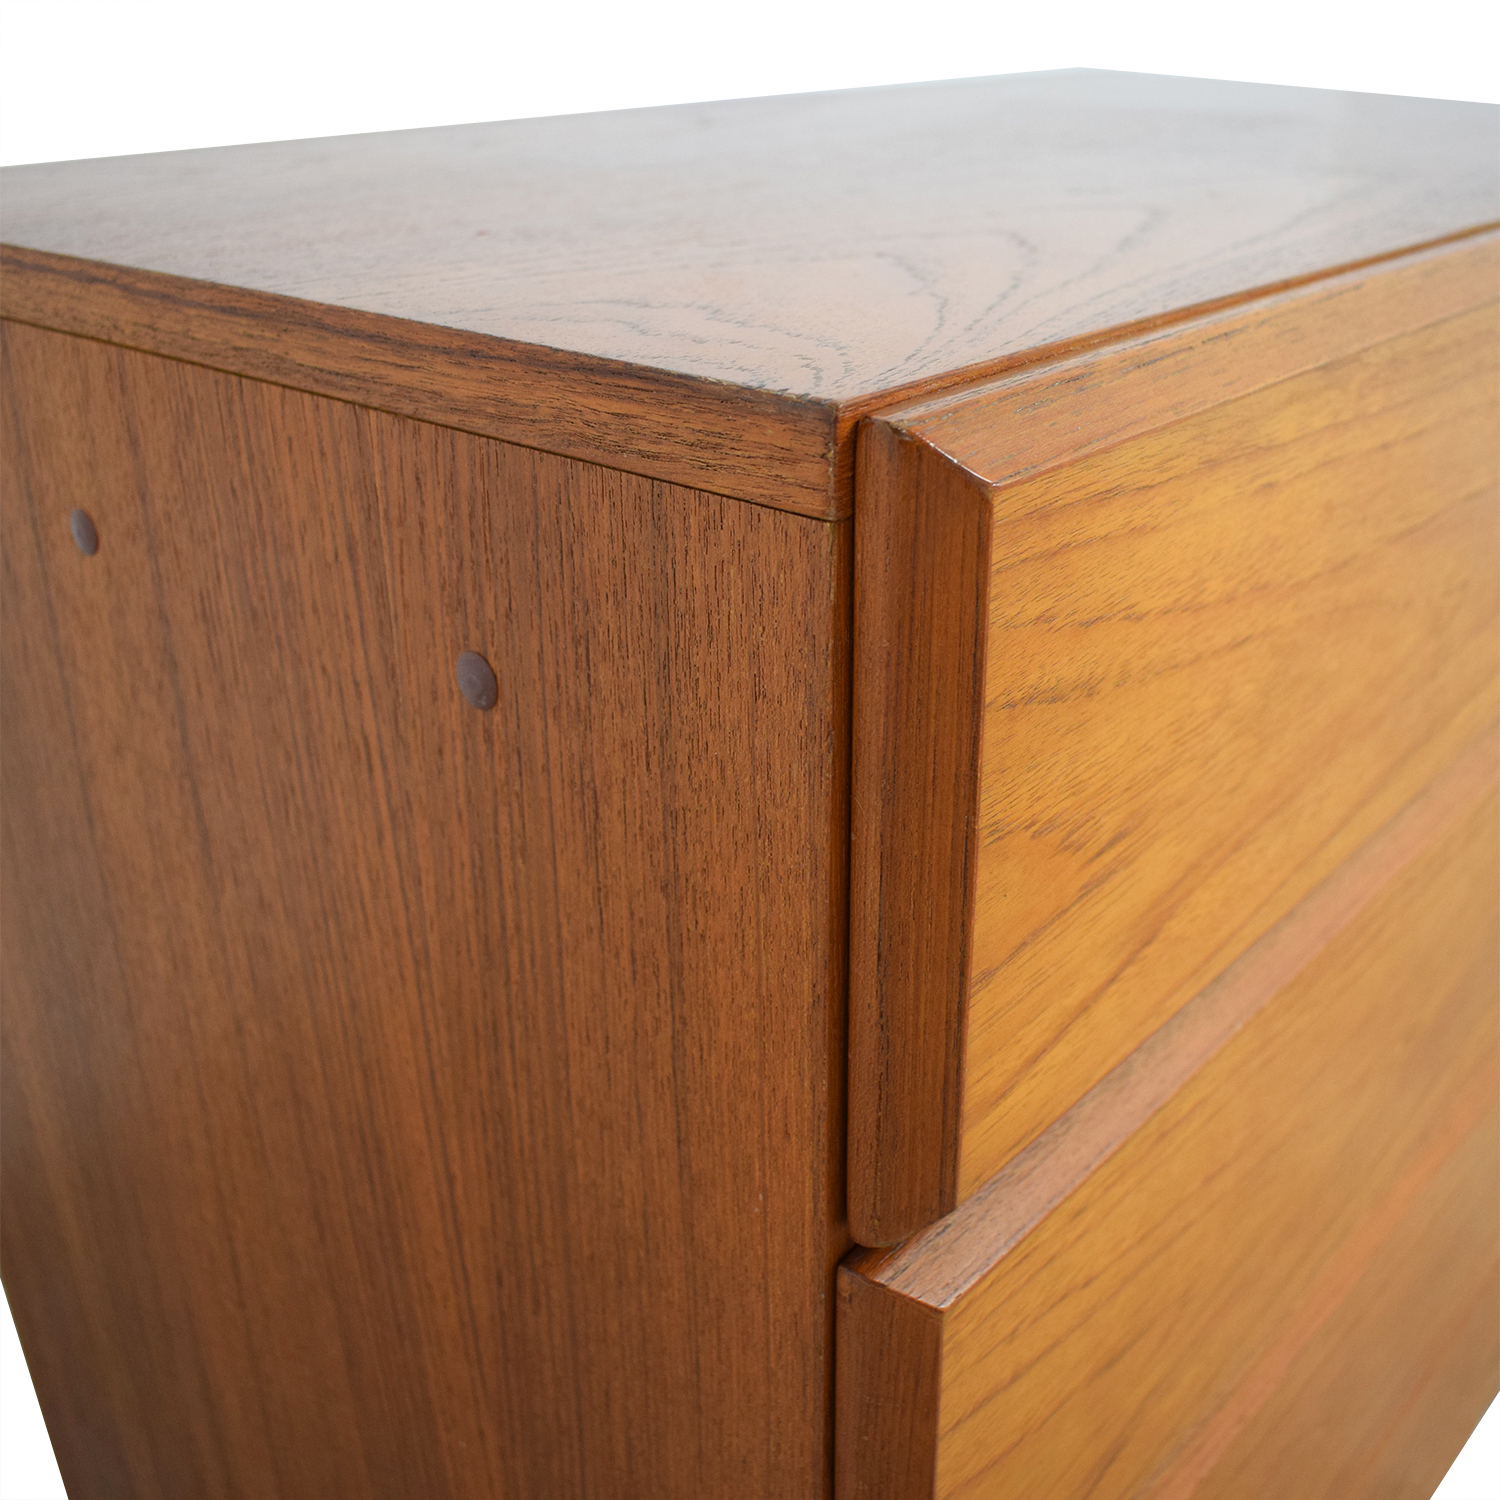 Dixie Furniture Company Dixie Furniture Danish Scova Four-Drawer Chest of Drawers nyc